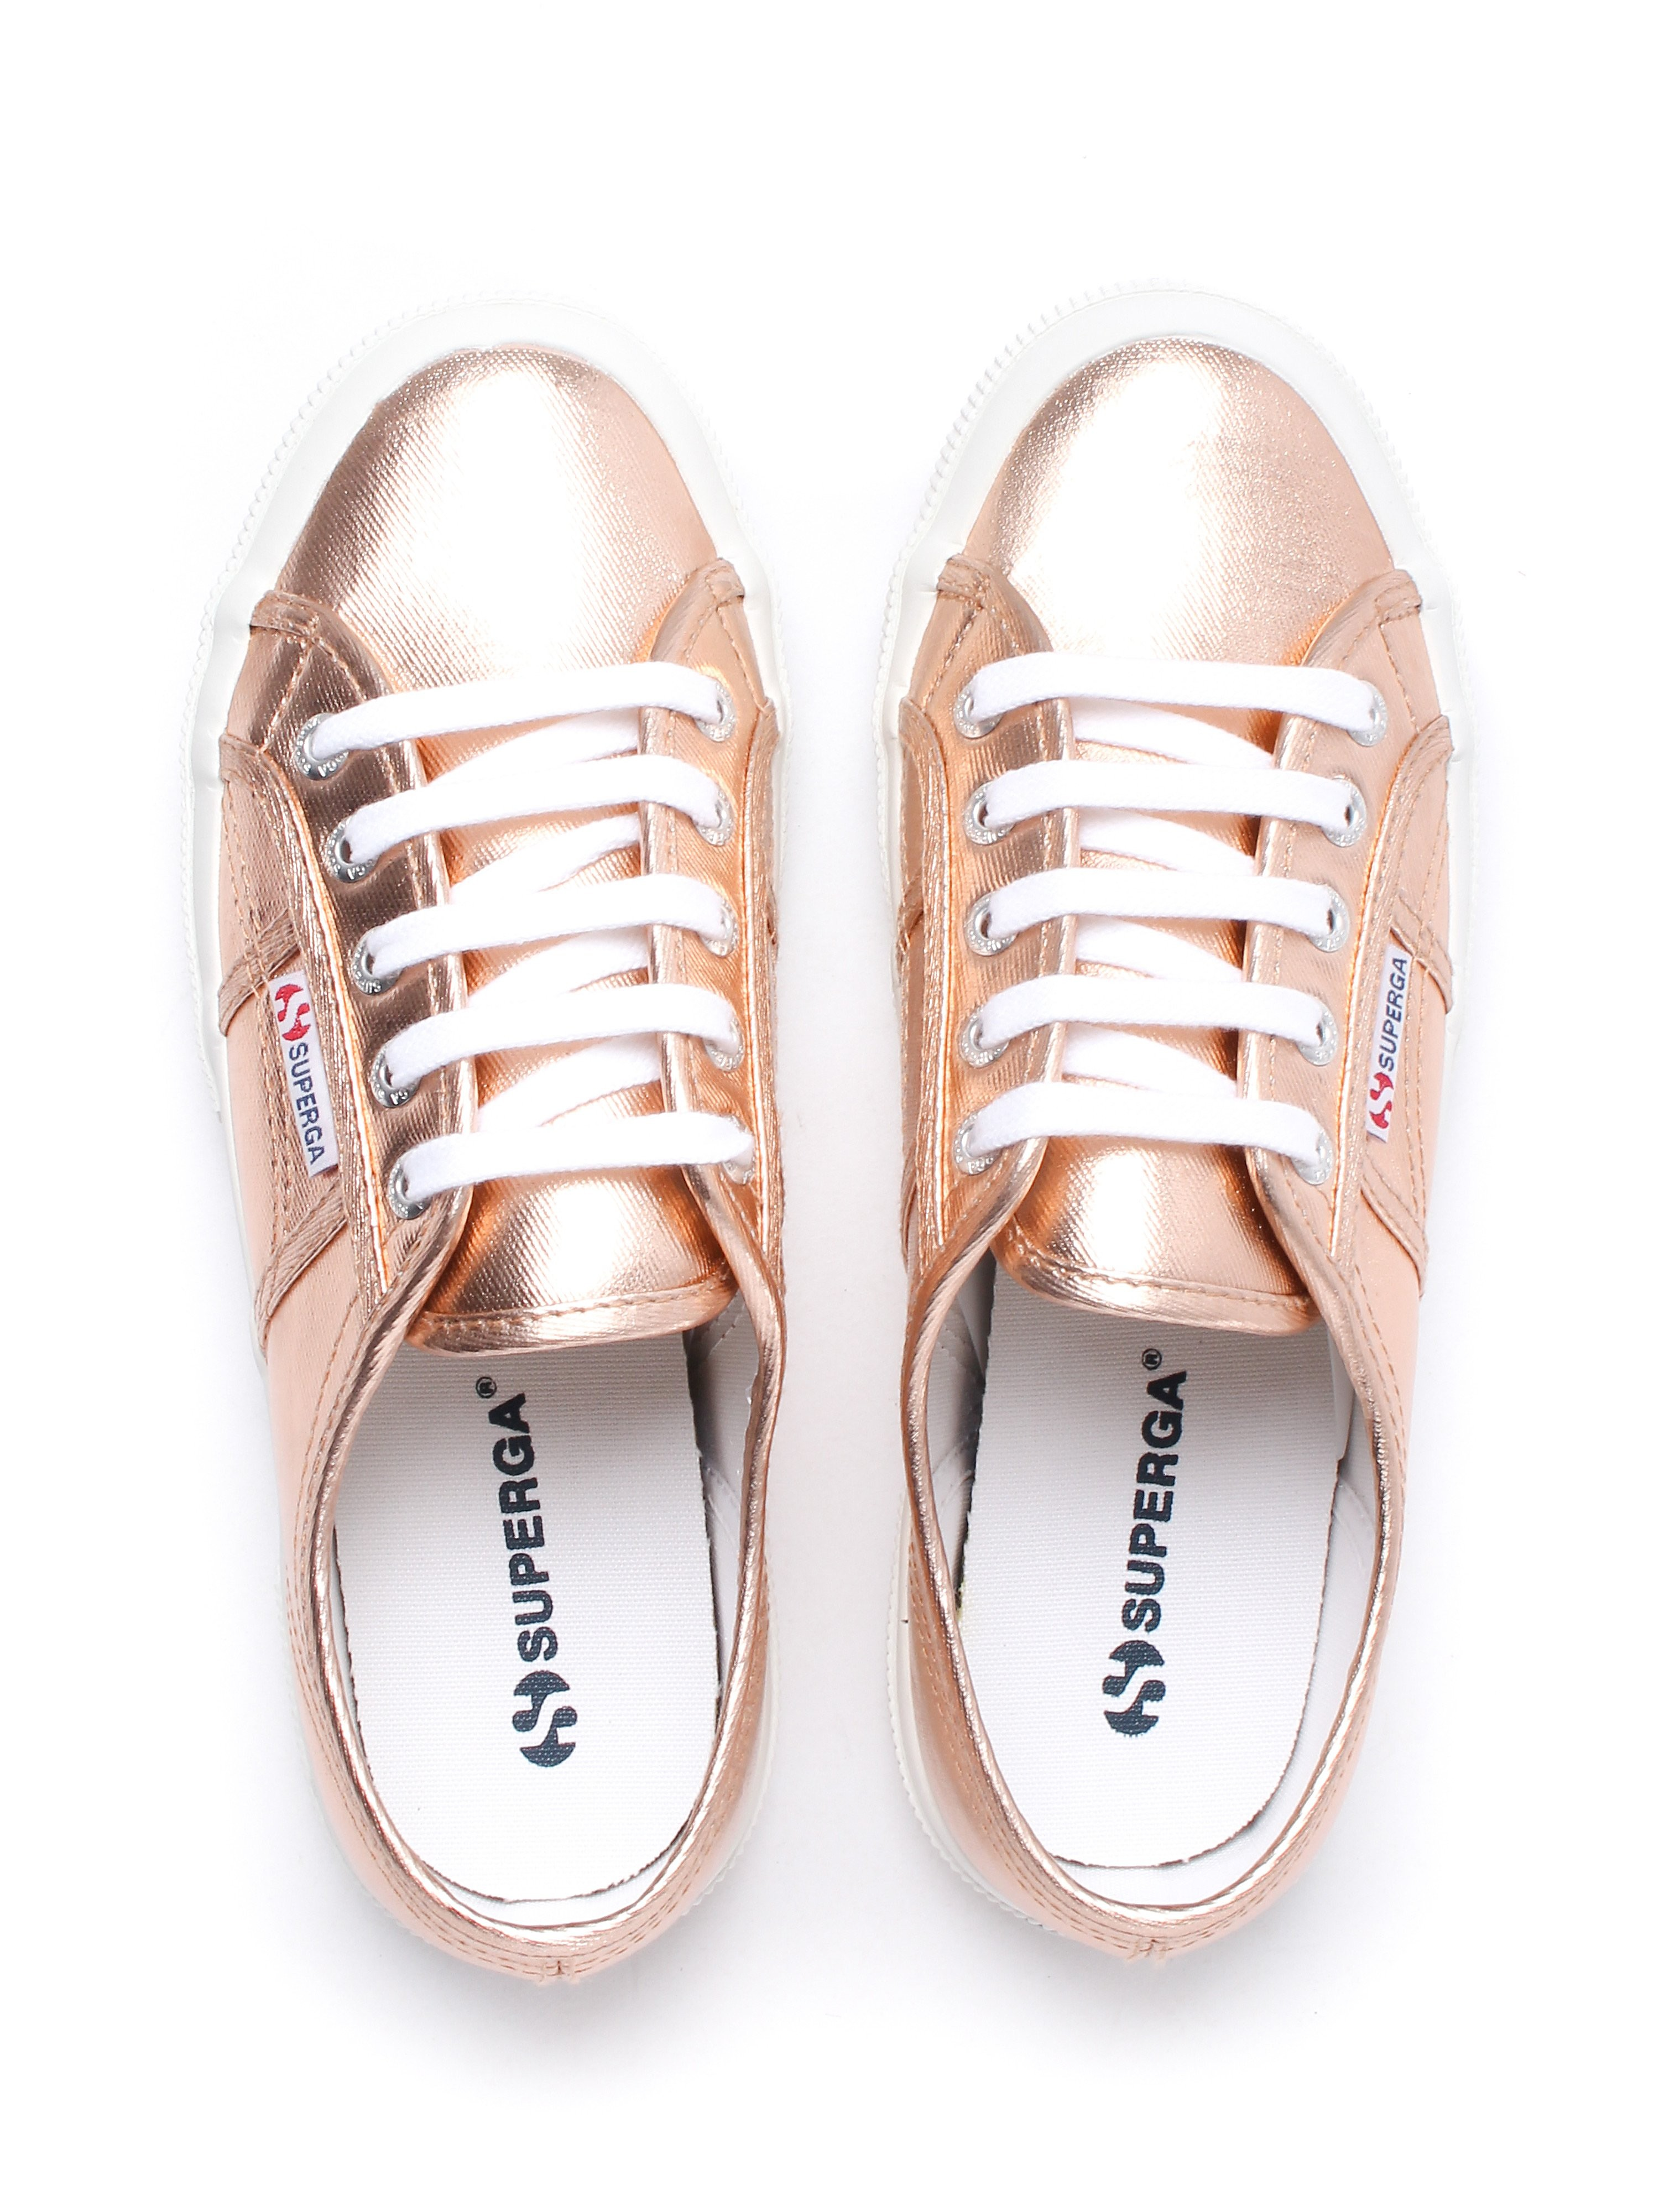 Superga Women's 2750 Cotmetu Metallic Canvas Trainers - Rose Gold